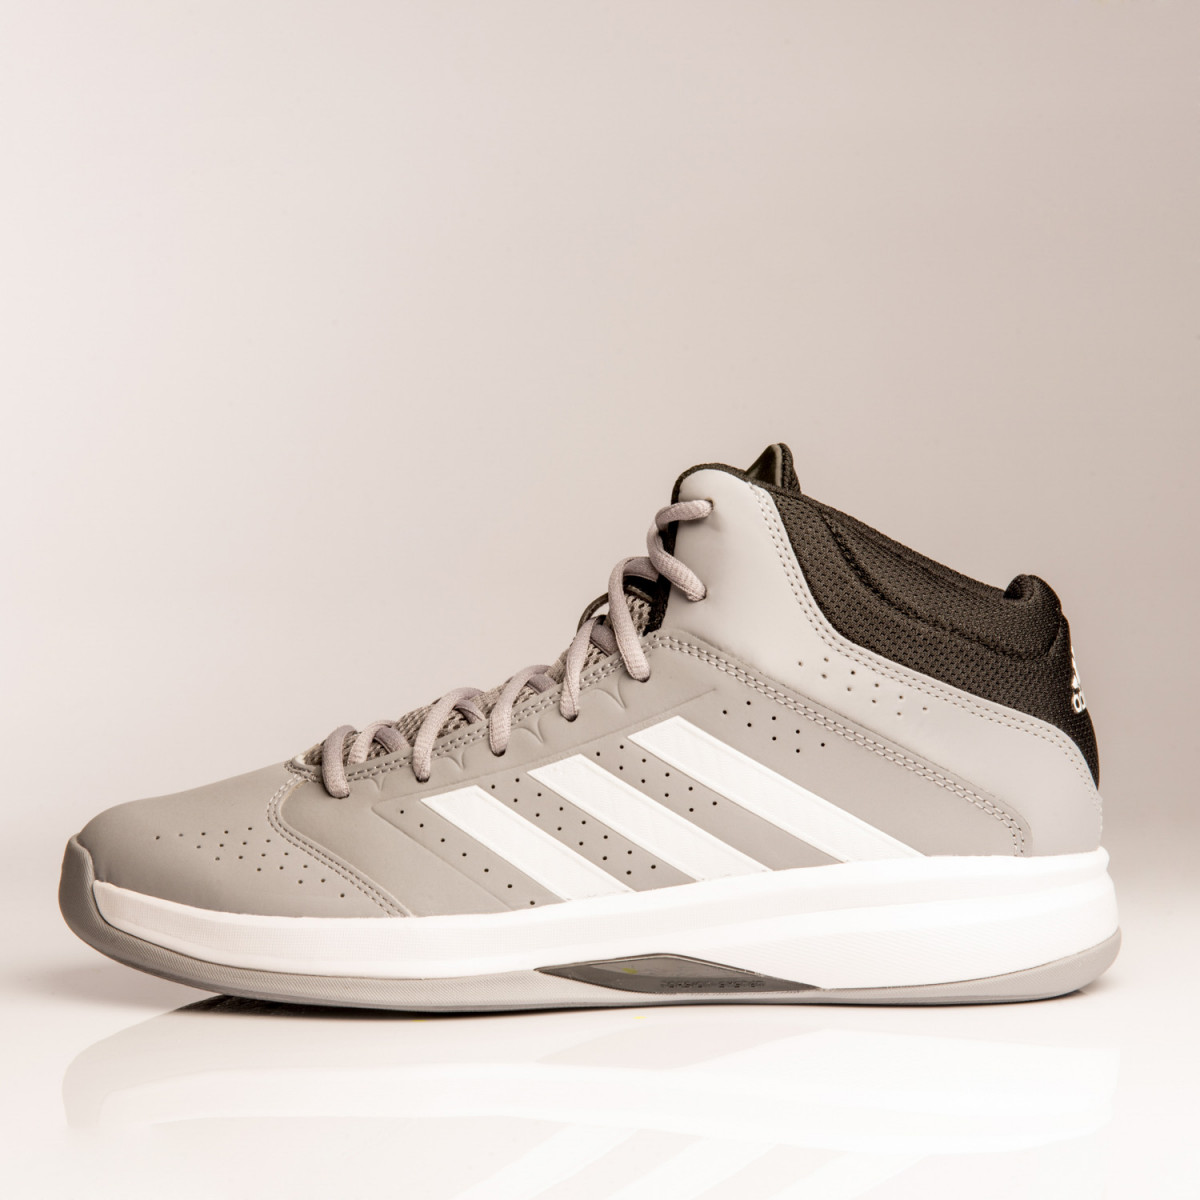 ZAPATILLAS ADIDAS ISOLATION 2